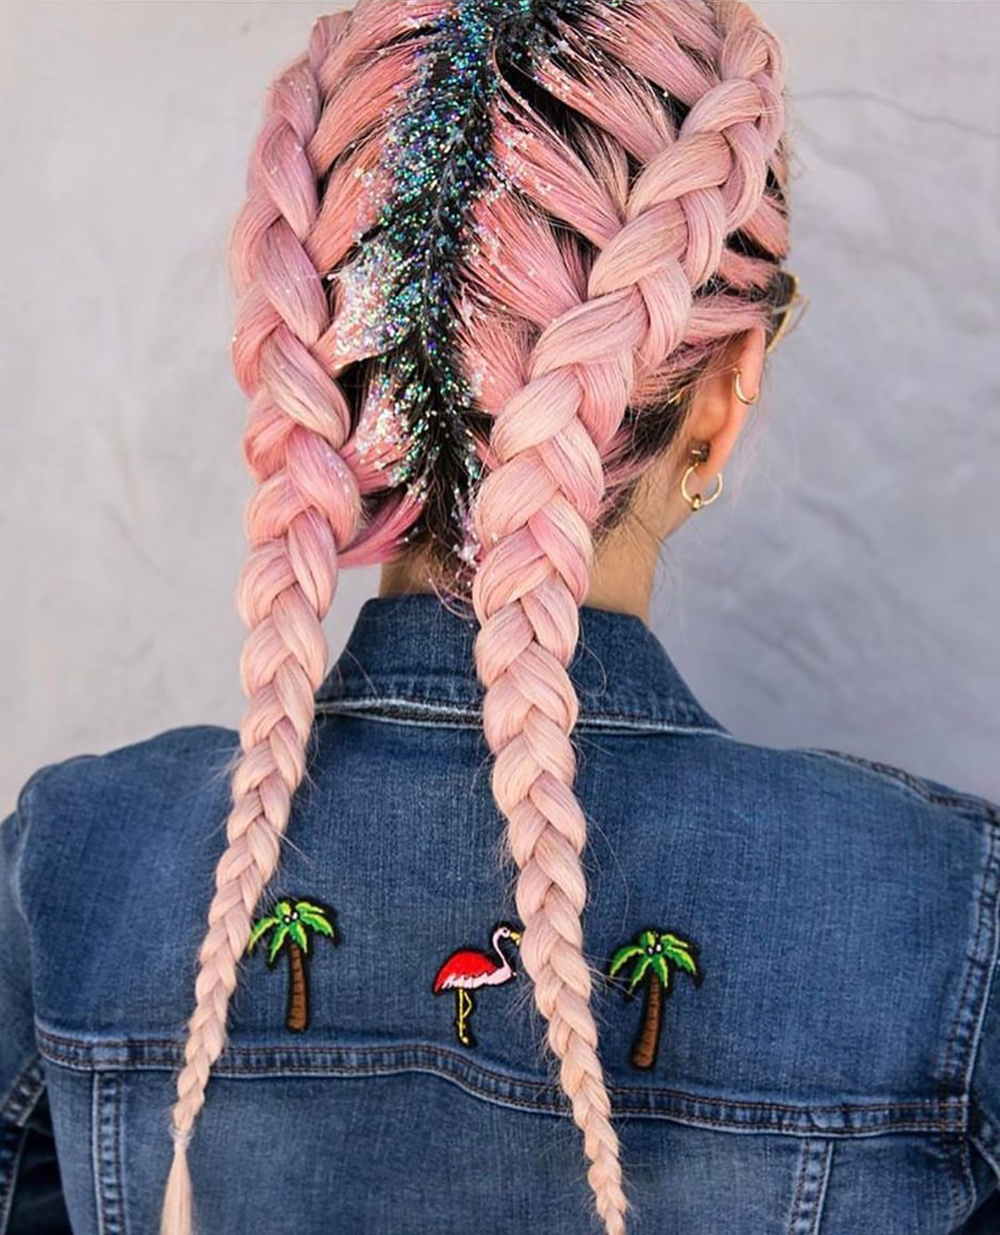 #GlitterRoots was one of many festival hairstyles trending on Instagram this weekend. I love this simple french braid pig tail with glitter roots. More inspiring trending festival hairstyles on beautybyjessika.com. (Photo via @jaclynharwood)